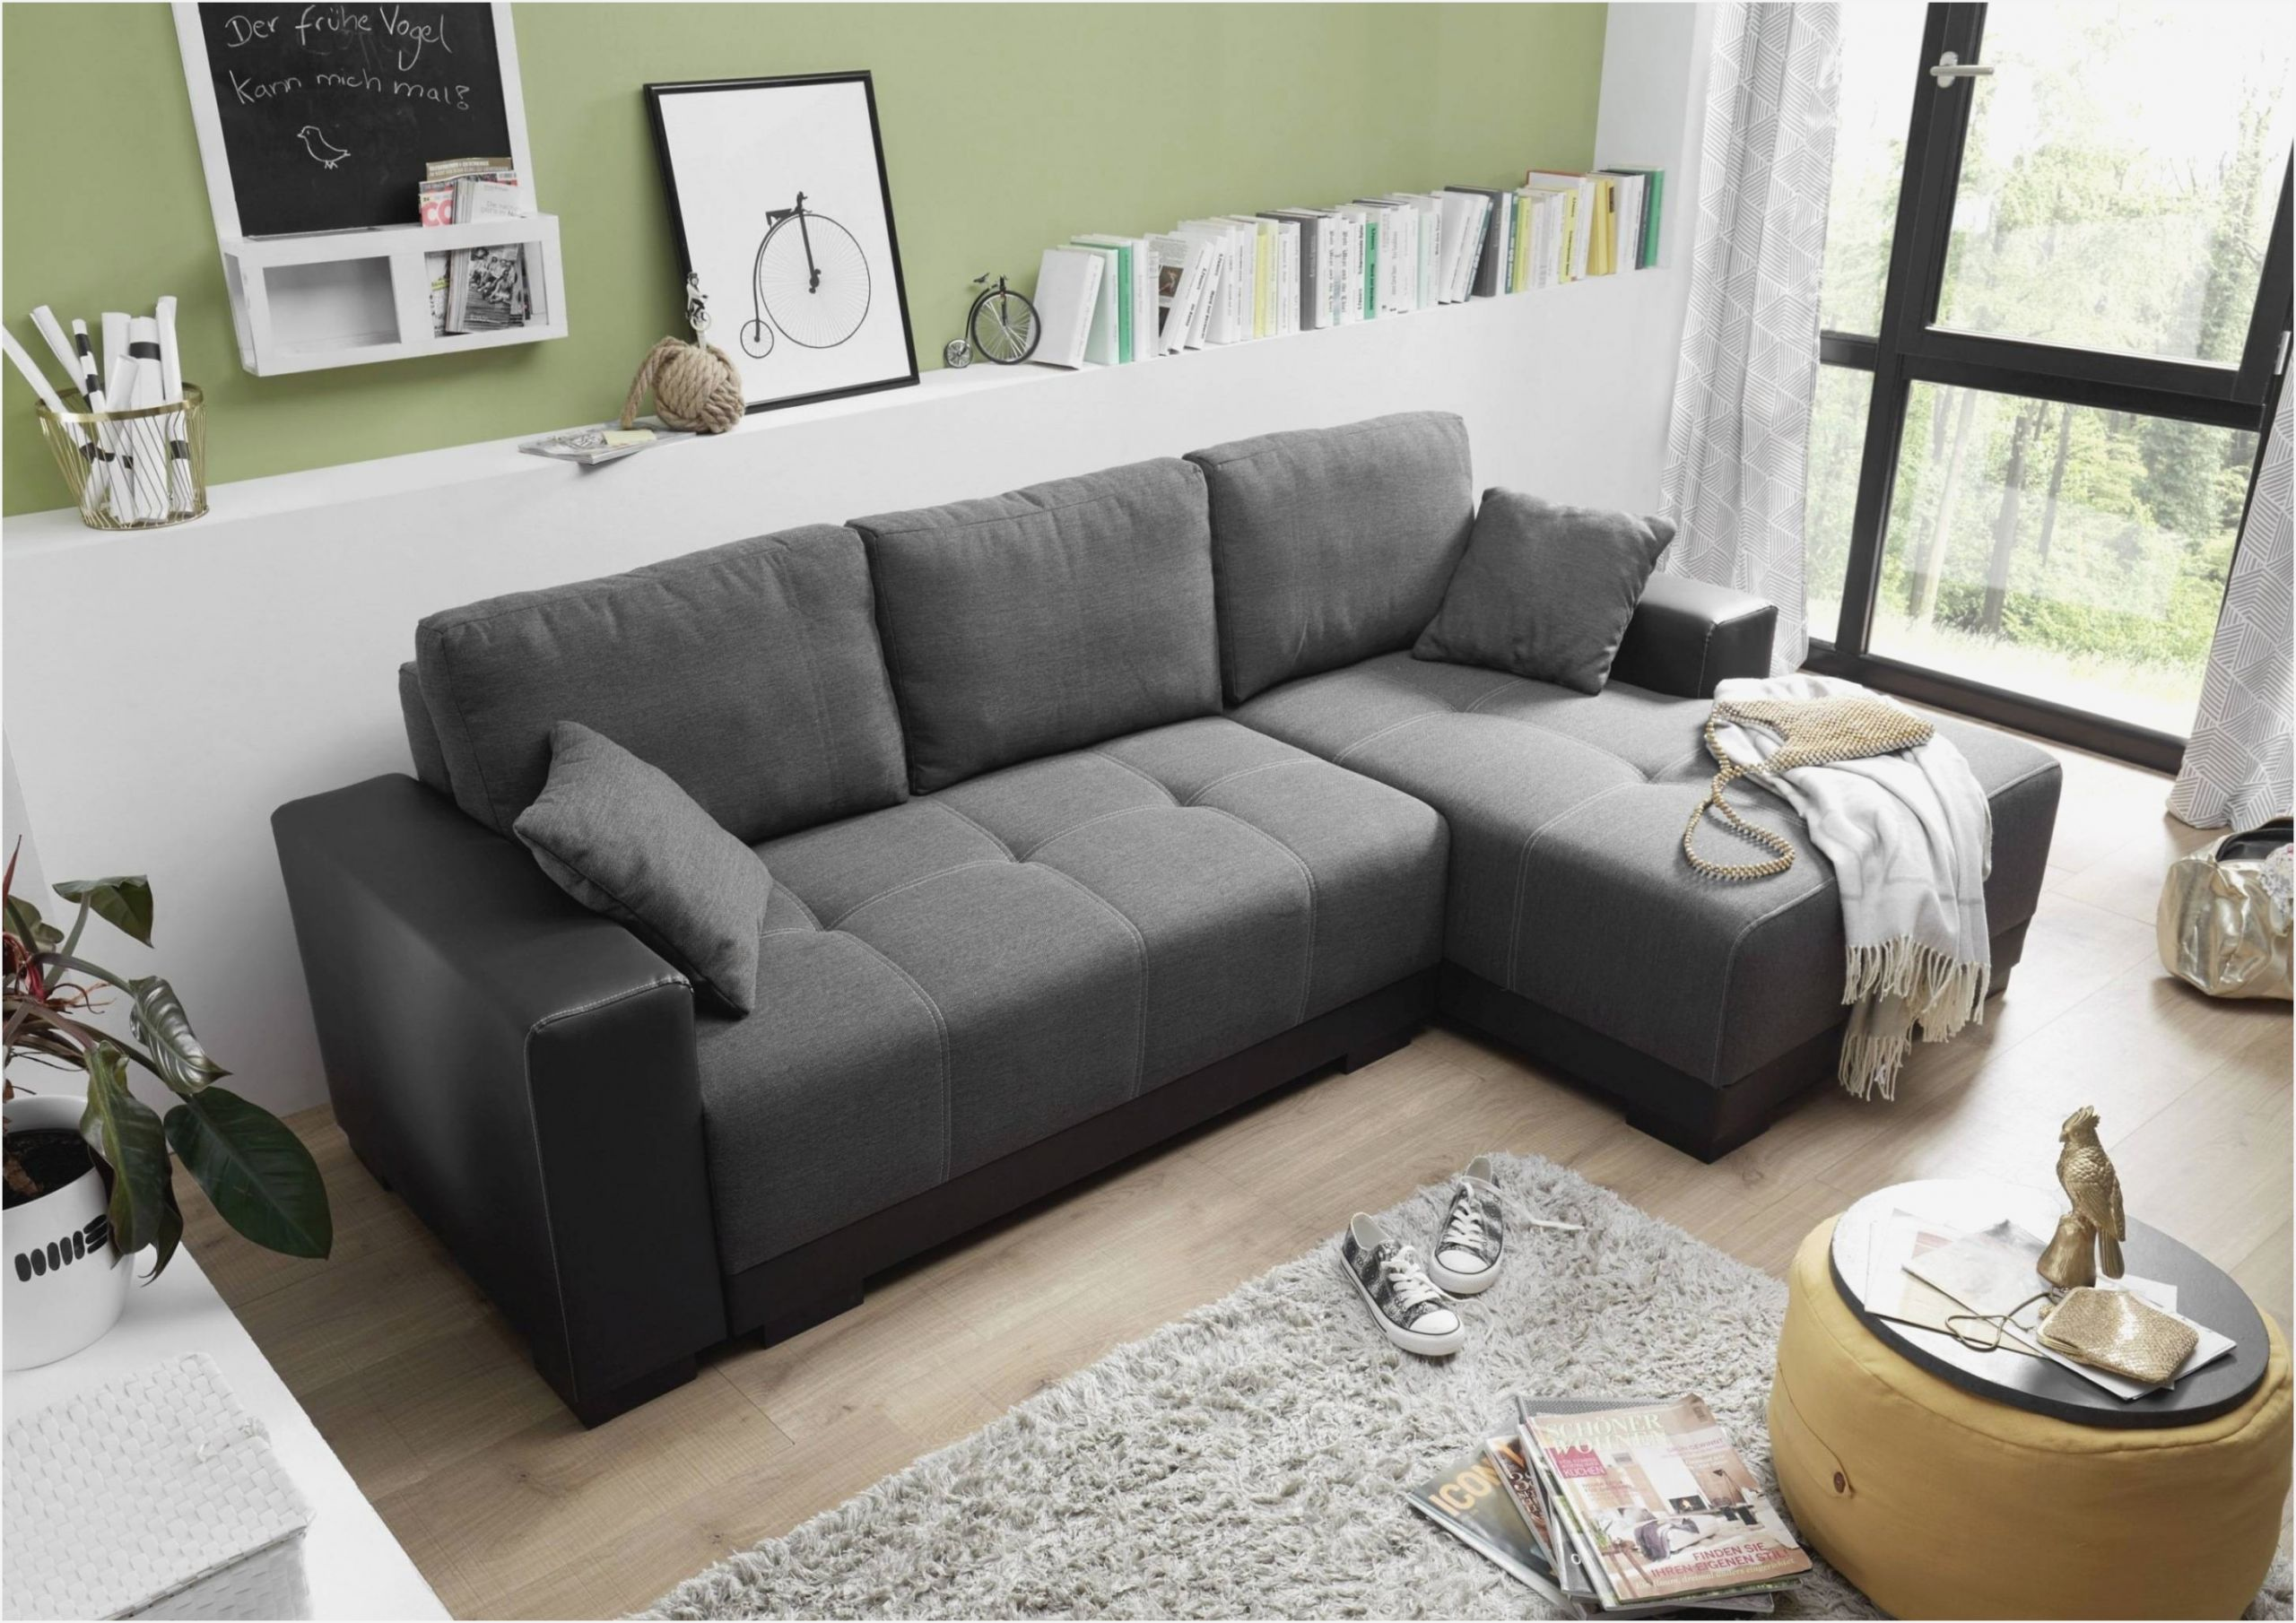 Full Size of Sofa Kinderzimmer Wann Fr Traumhaus Dekoration Tom Tailor Boxspring Mit Schlaffunktion Alcantara Xora Antikes Bezug Ecksofa Mega Brühl Federkern U Form Xxl Sofa Sofa Kinderzimmer